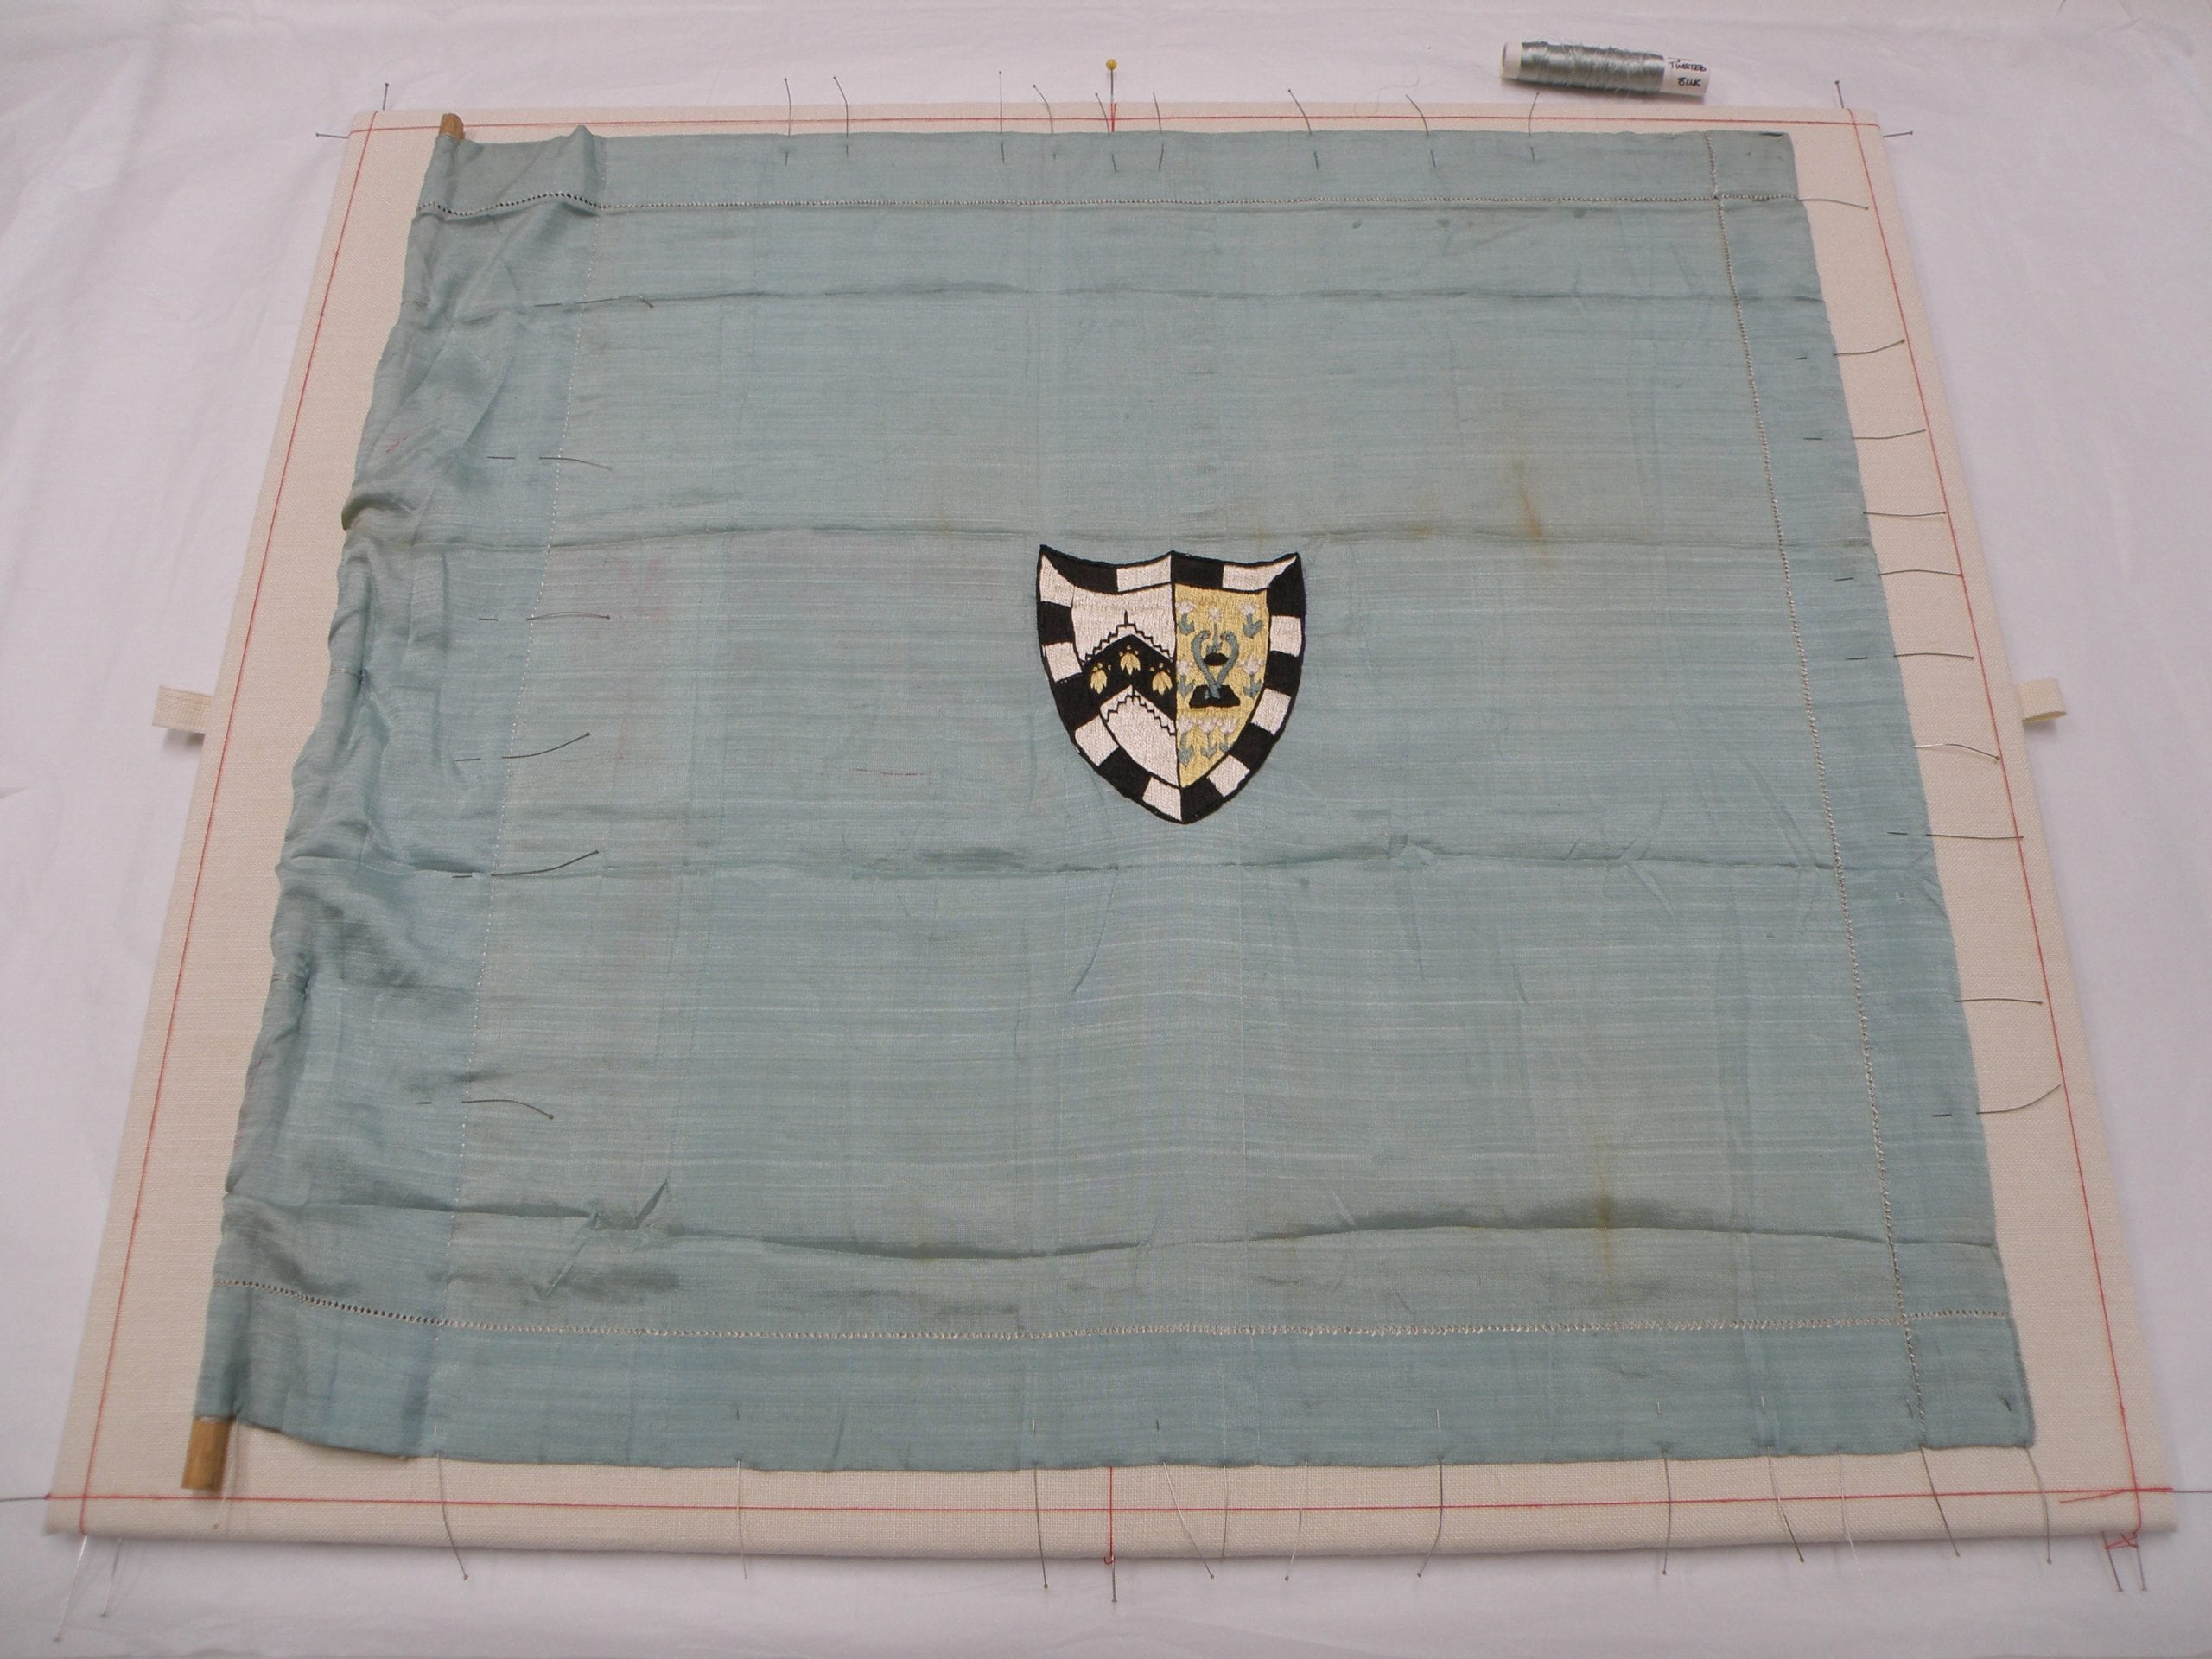 Scott Expedition Wilson Flag, Gonville and Caius College, Cambridge